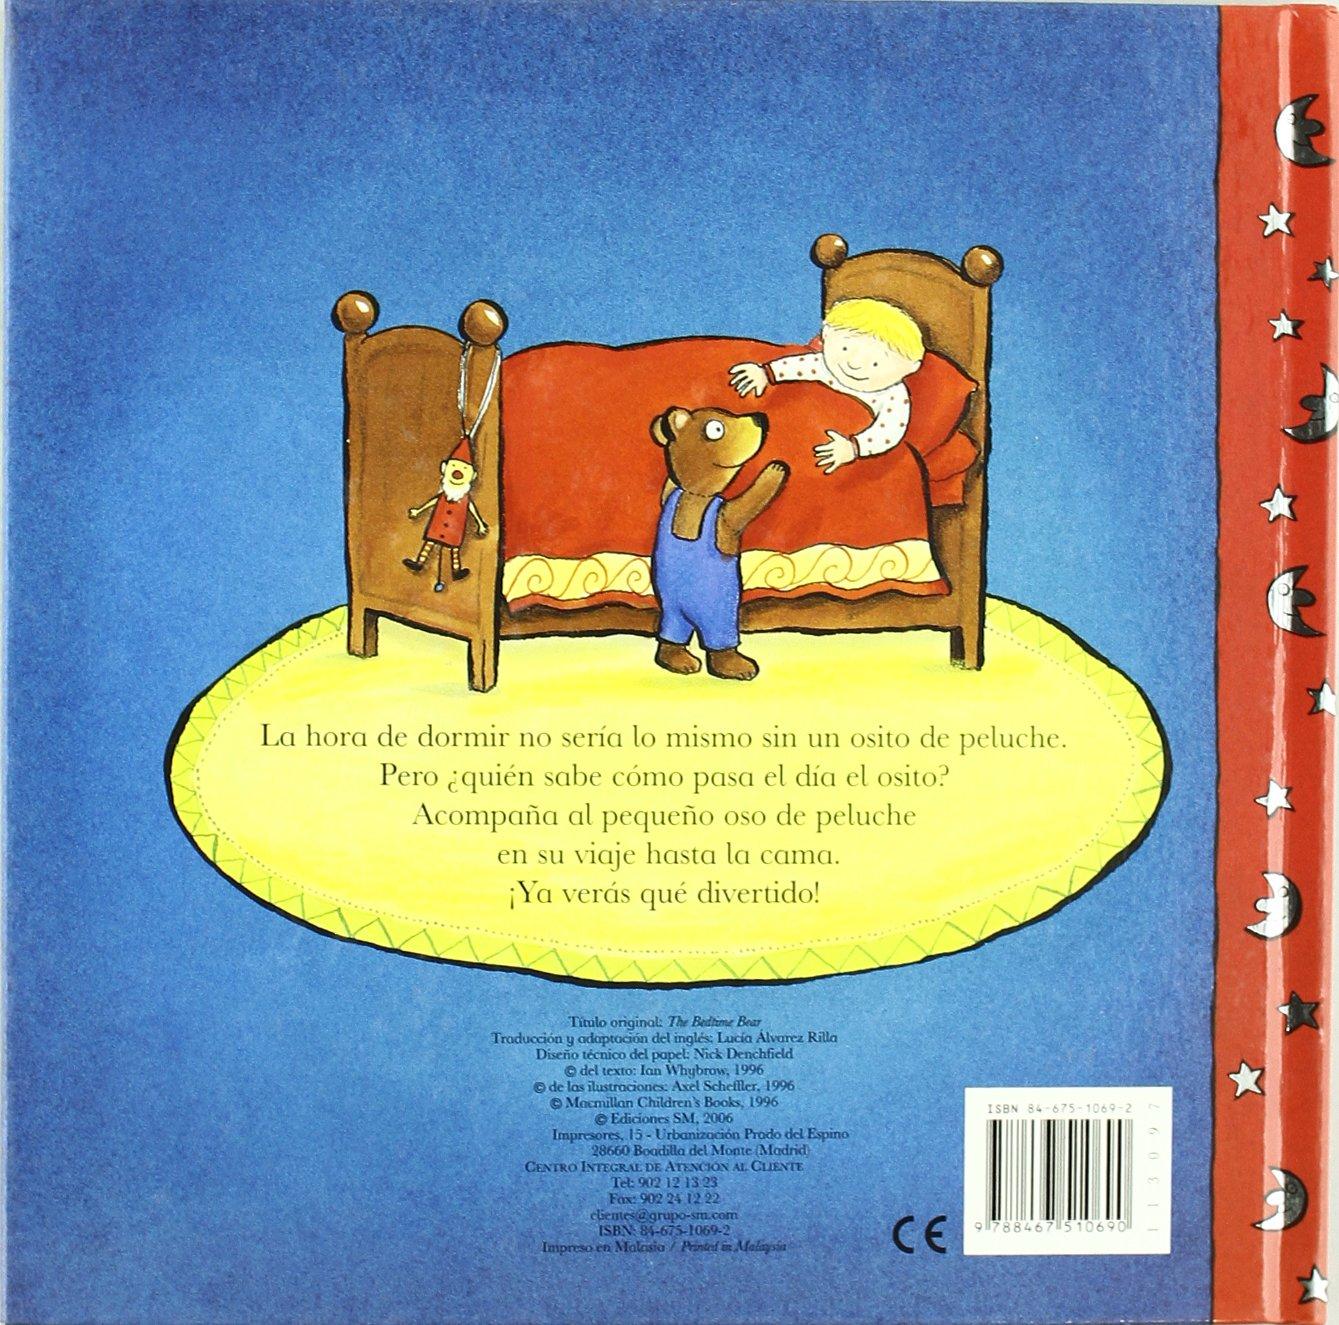 El osito de peluche / The Bedtime Bear (Spanish Edition): Ian Whybrow, Axel Scheffler, Lucia Alvarez Rilla: 9788467510690: Amazon.com: Books